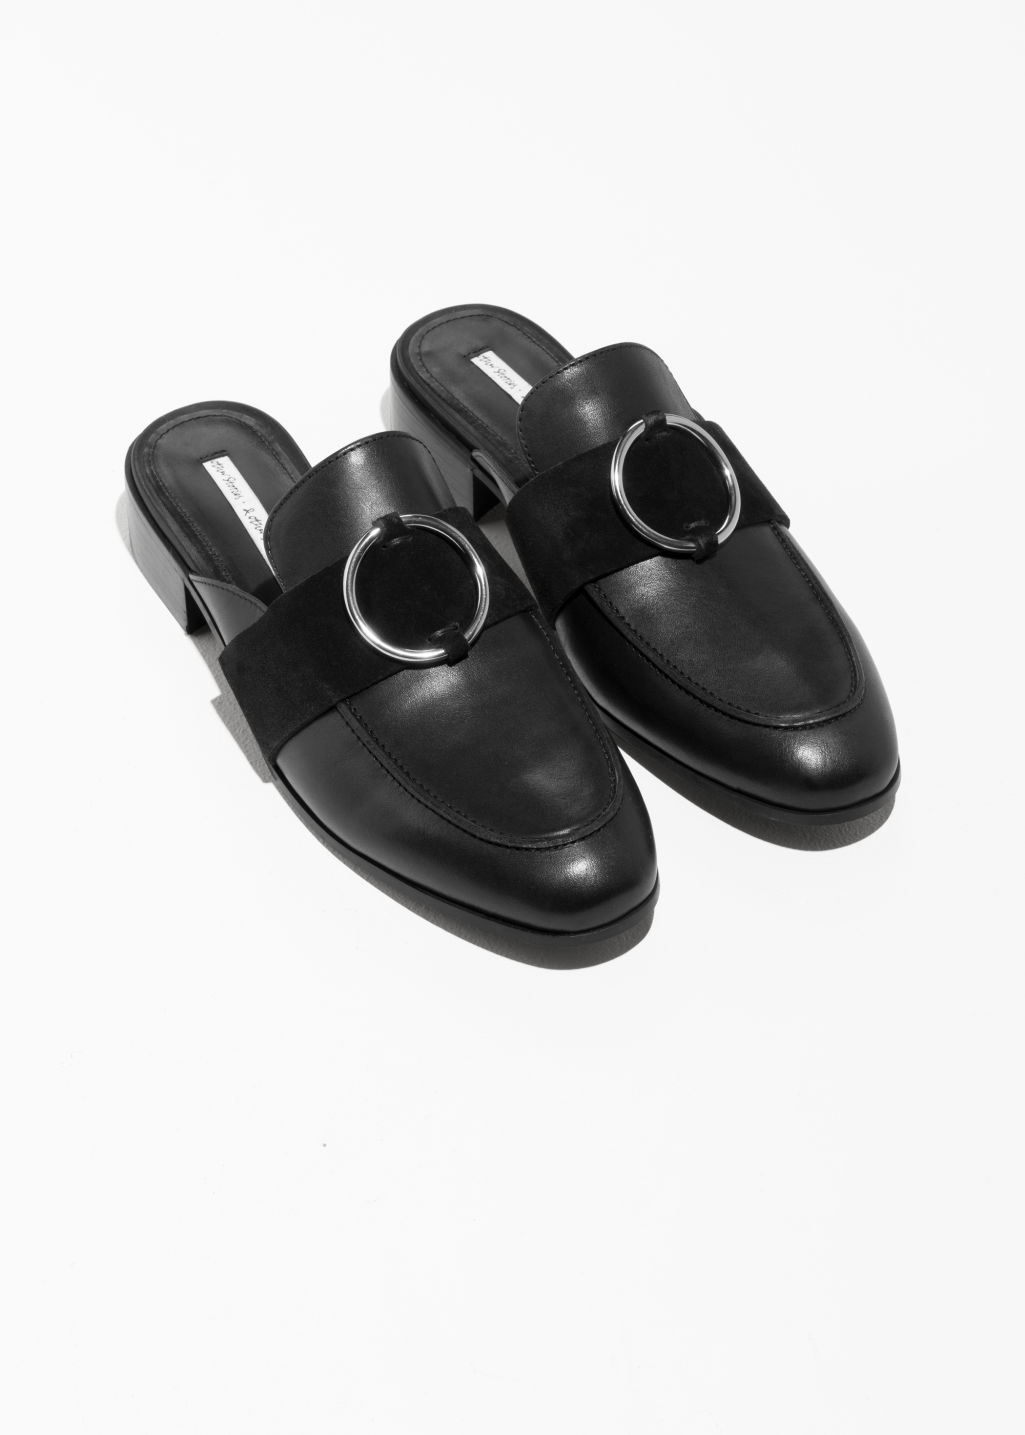 & OTHER STORIES O-Ring Slip On Loafers 1PO5wwsvan